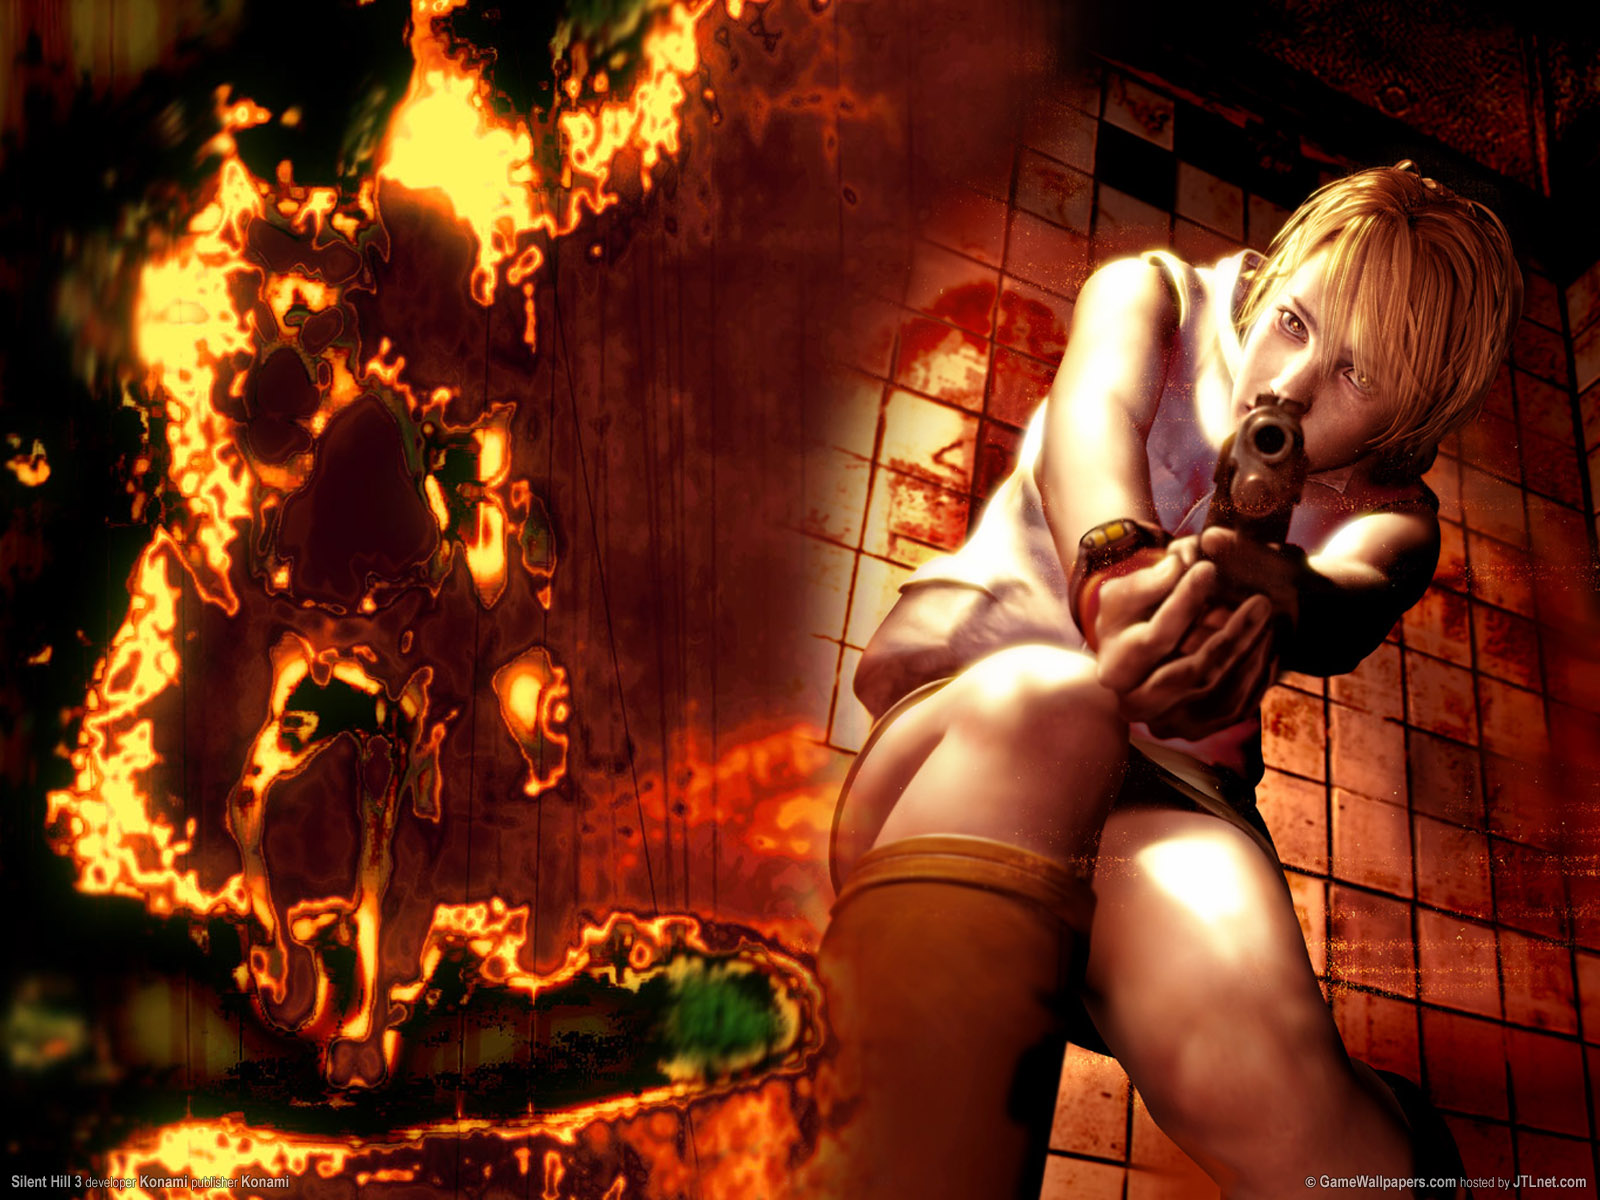 Silent Hill 3 wallpapers Silent Hill 3 stock photos 1600x1200